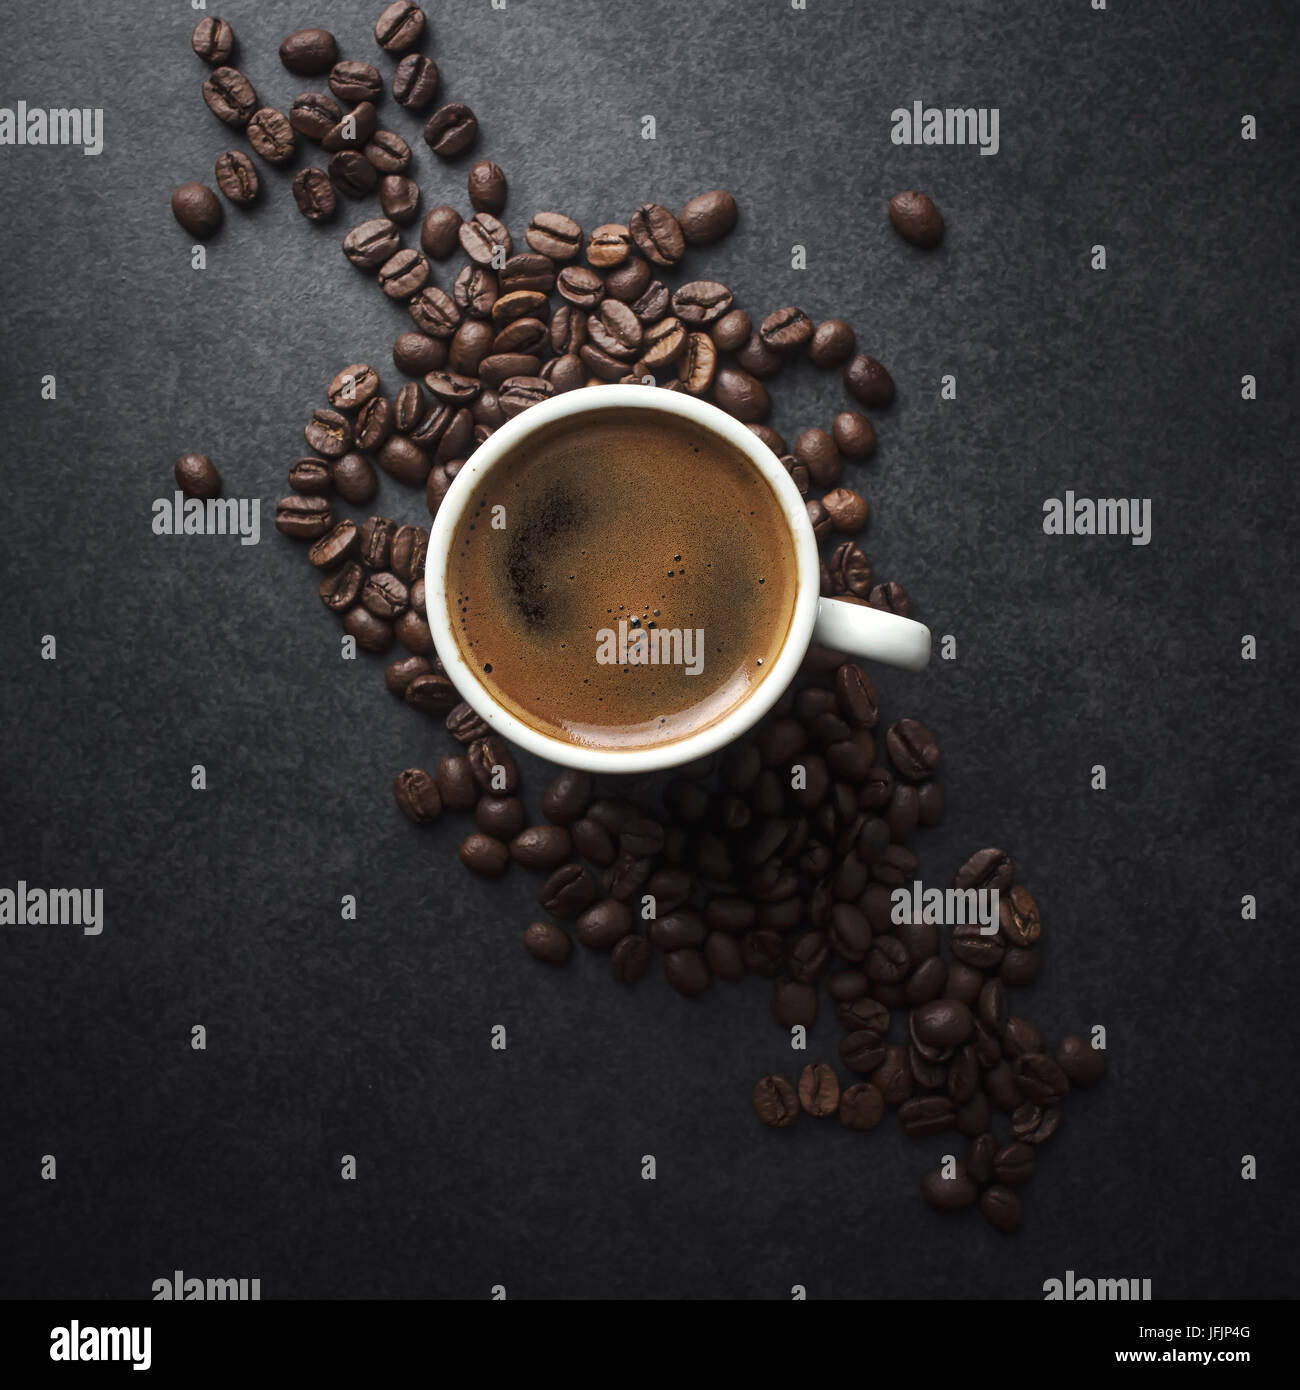 Cup of coffee and beans on table, from above - Stock Image